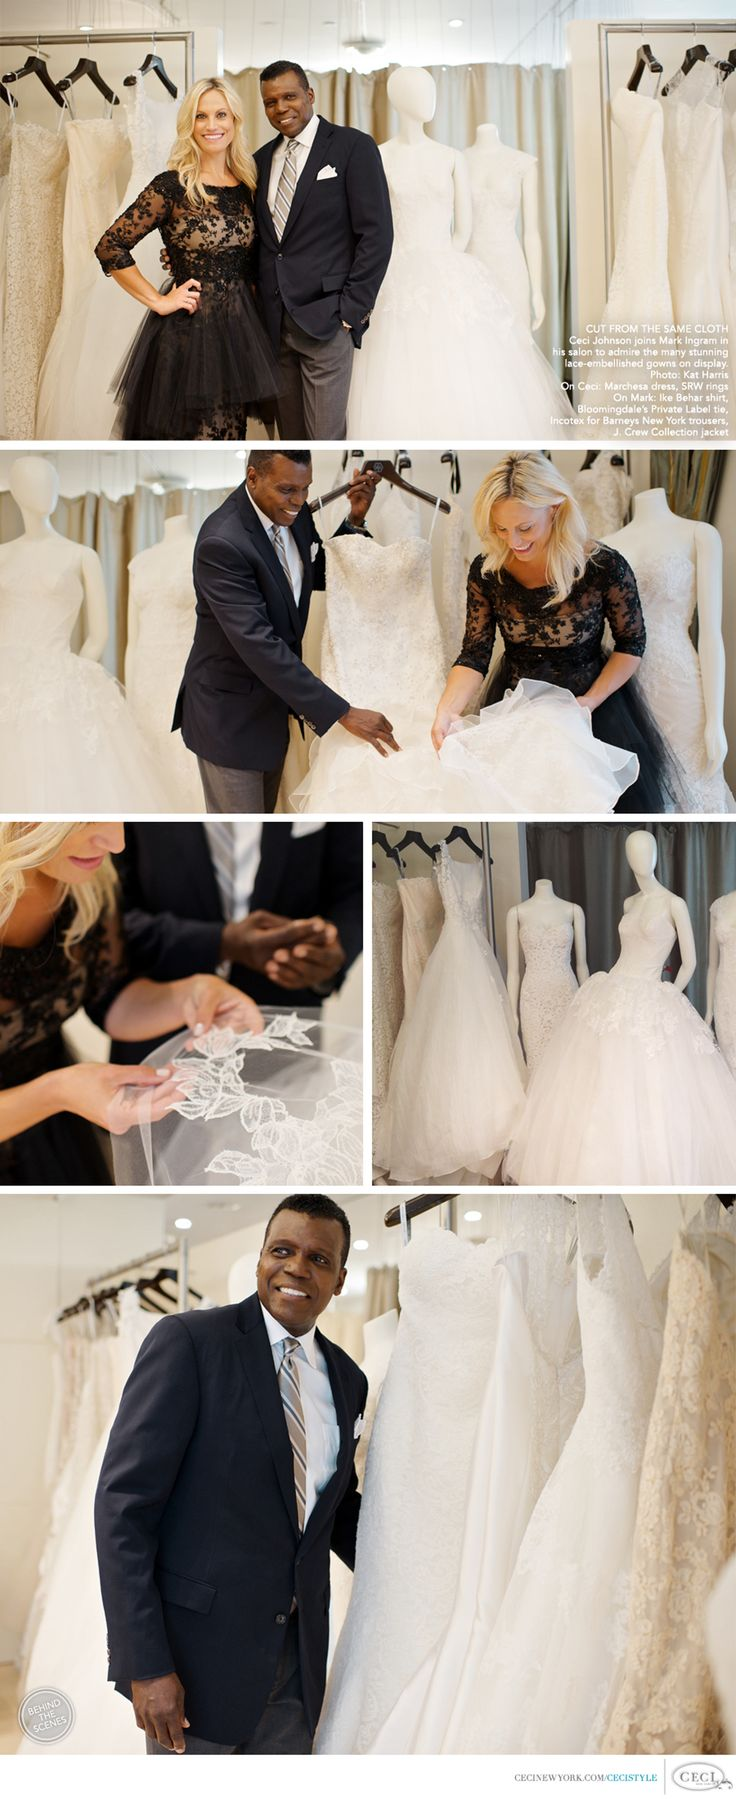 241 best Ceci Inspirations images on Pinterest Wedding